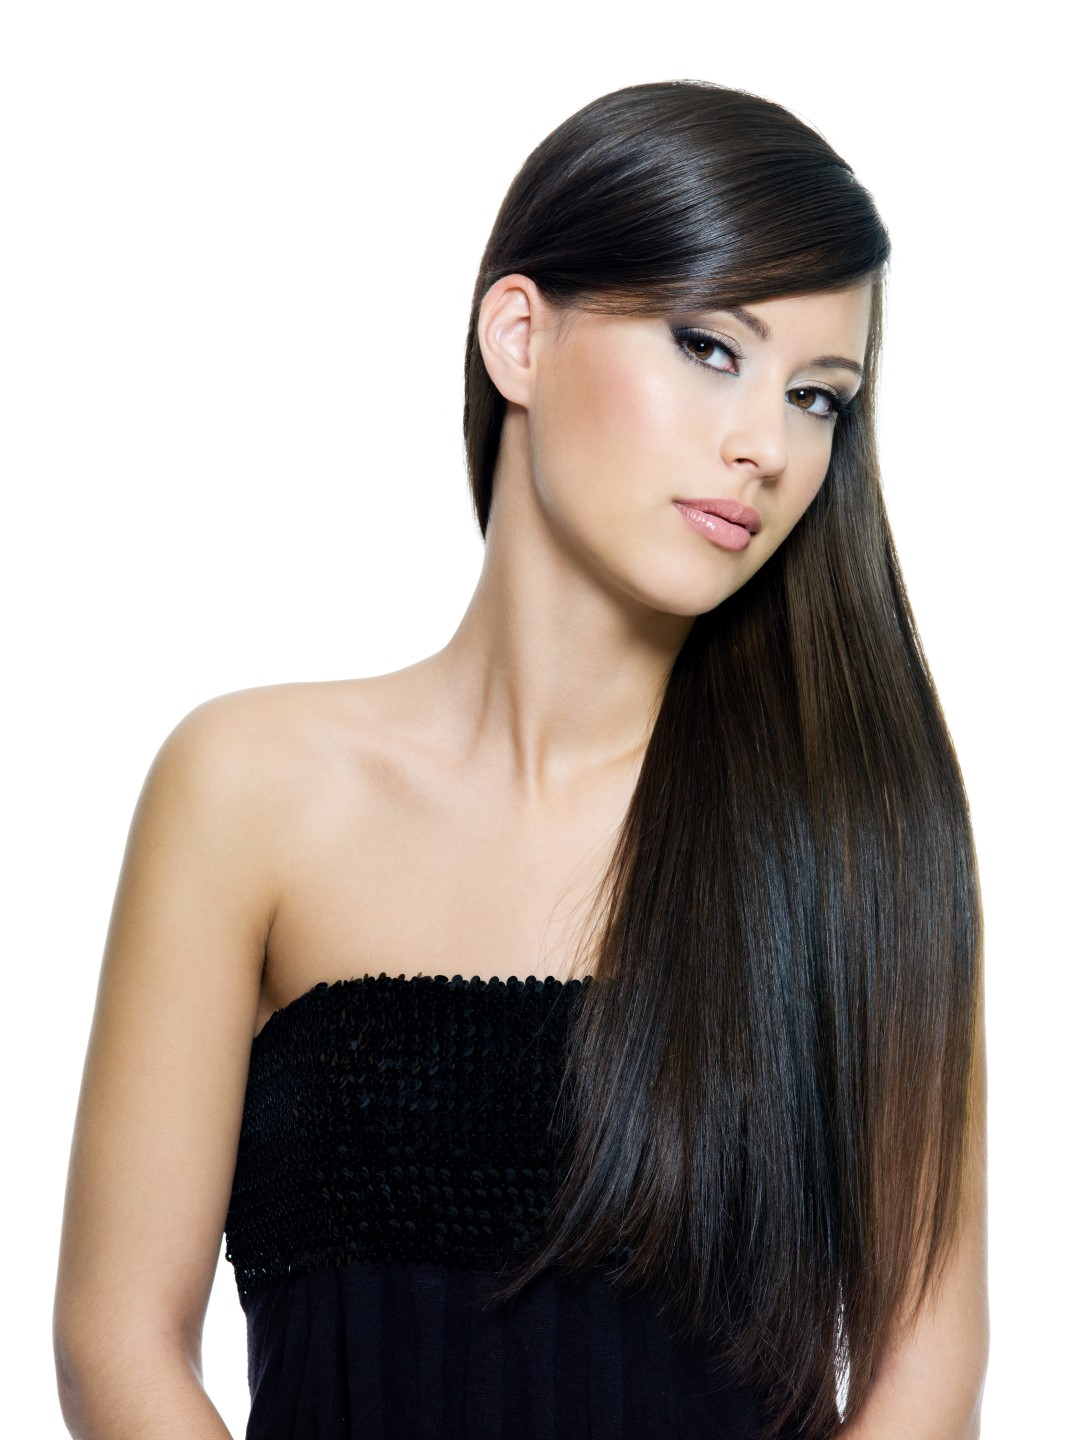 hair long straight brown woman hairstyles pelo cabello liso lipoic alpha helene beauty cuts skin ultimate acids protect largo cabellos